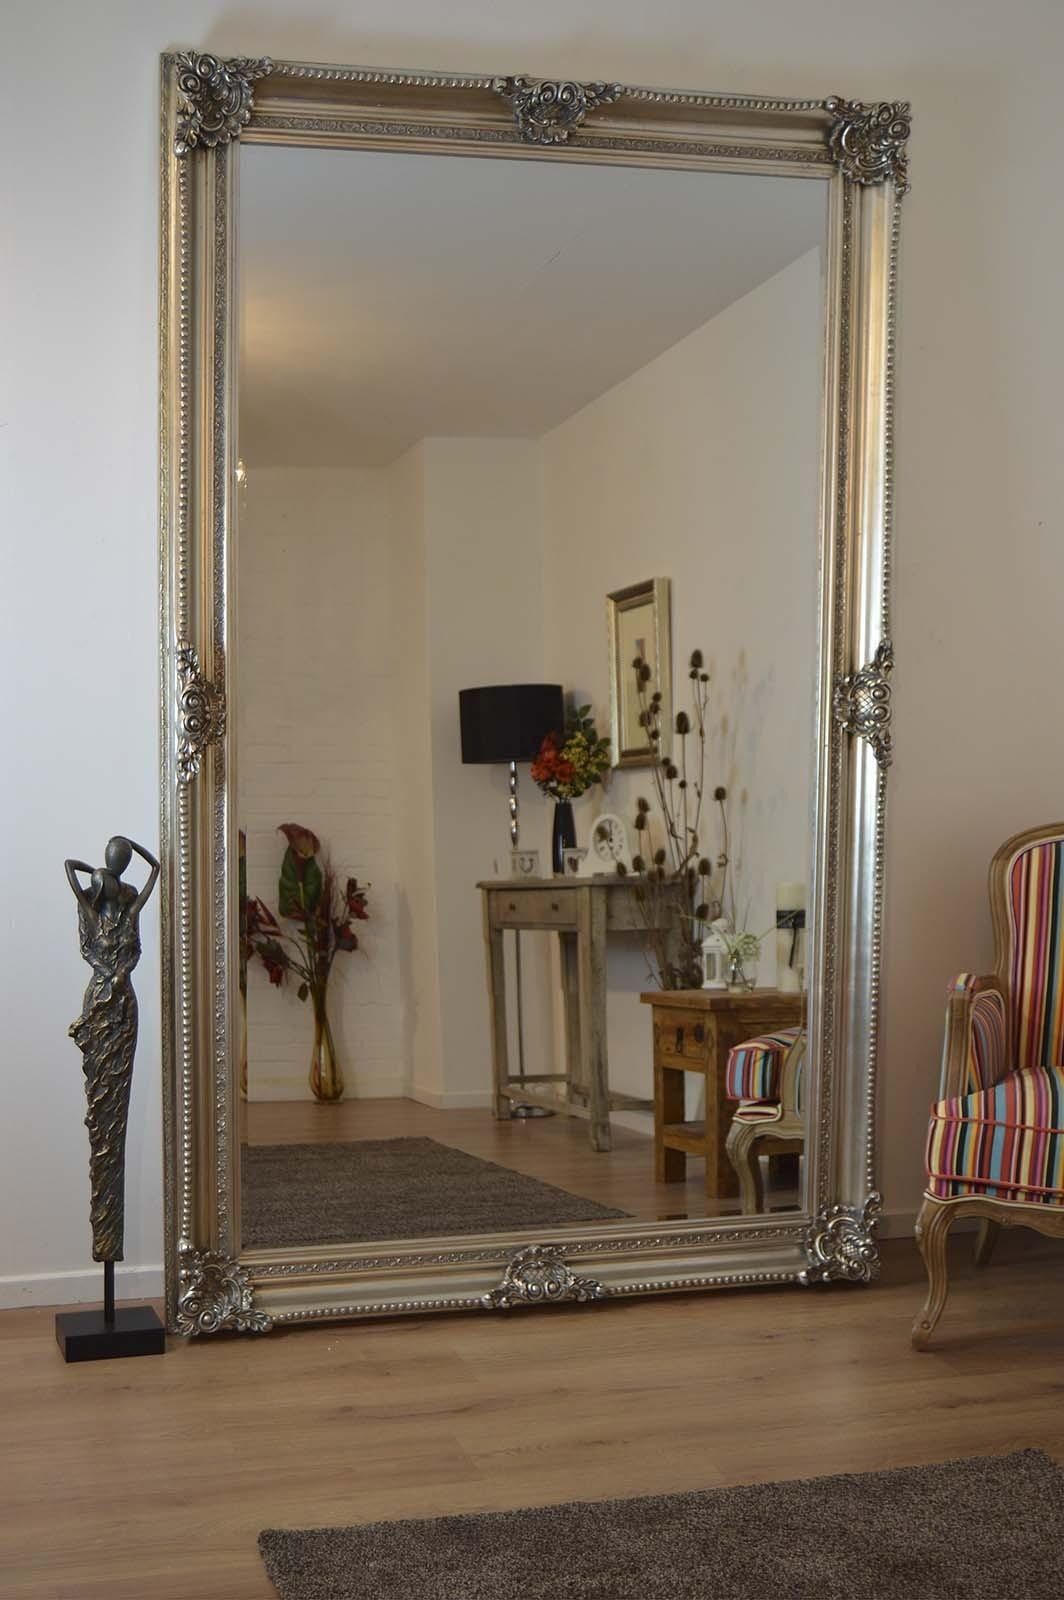 Classic Impression On Antique Wall Mirrors | Vwho In Antique Cream Wall Mirrors (View 4 of 20)